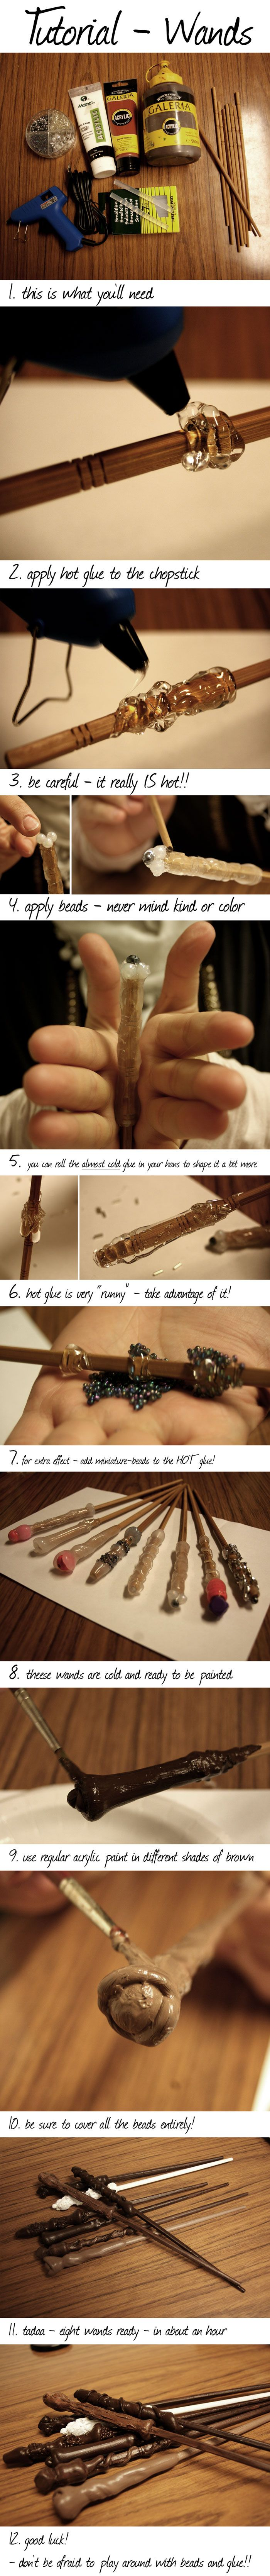 DIY Harry Potter Wands. This is sooooo gonna happen.